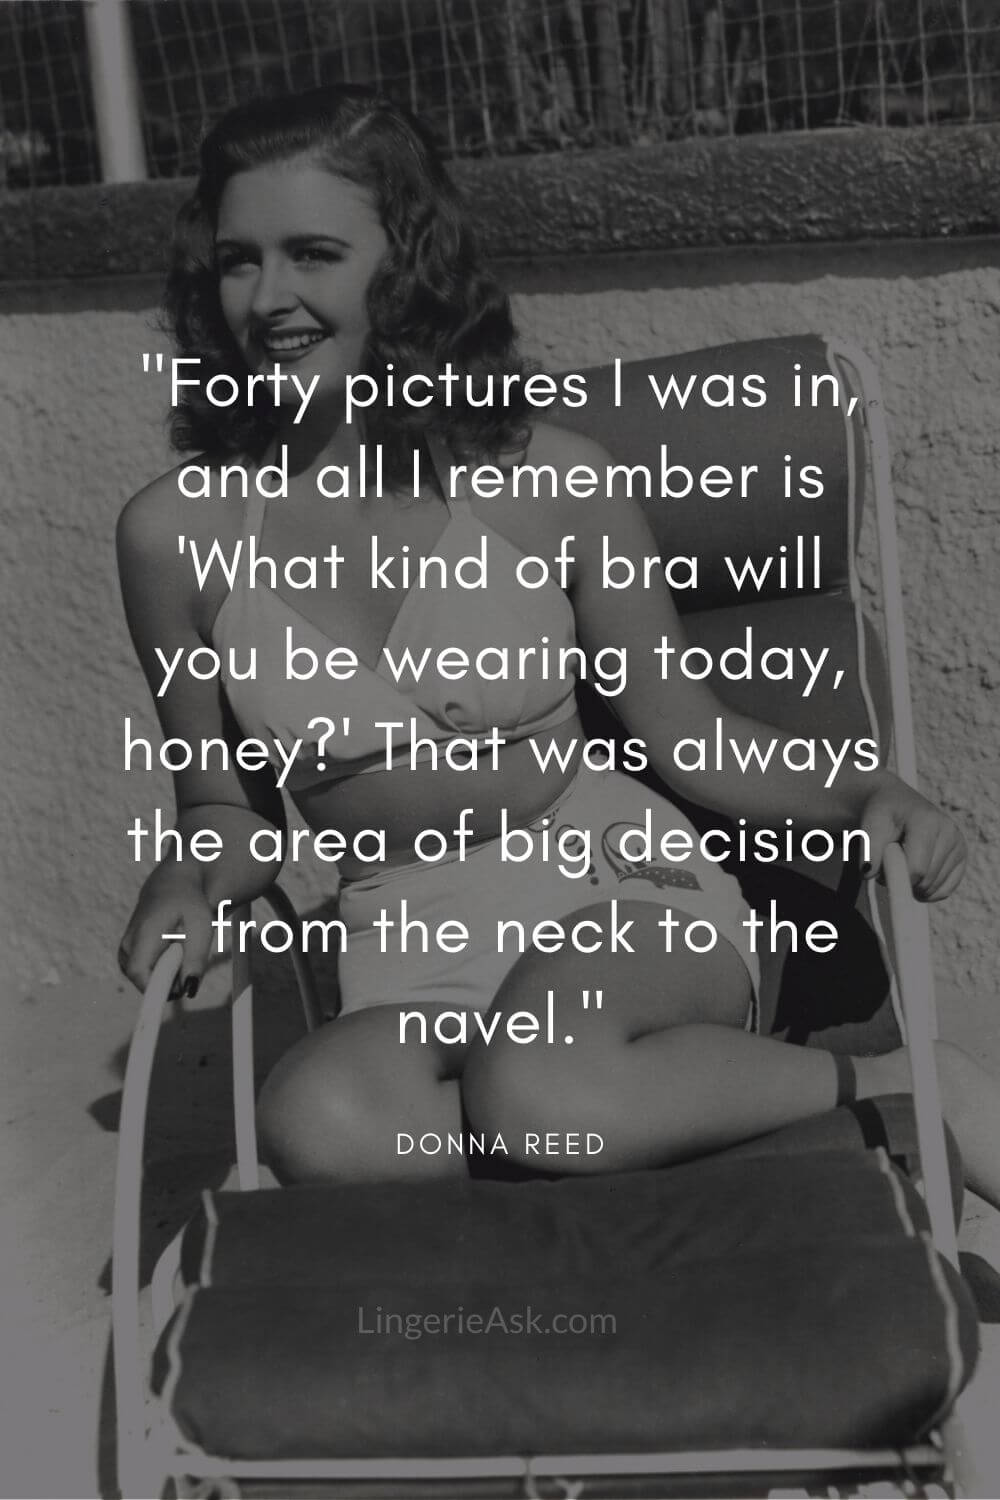 Forty pictures I was in, and all I remember is 'What kind of bra will you be wearing today, honey' That was always the area of big decision - from the neck to the navel.